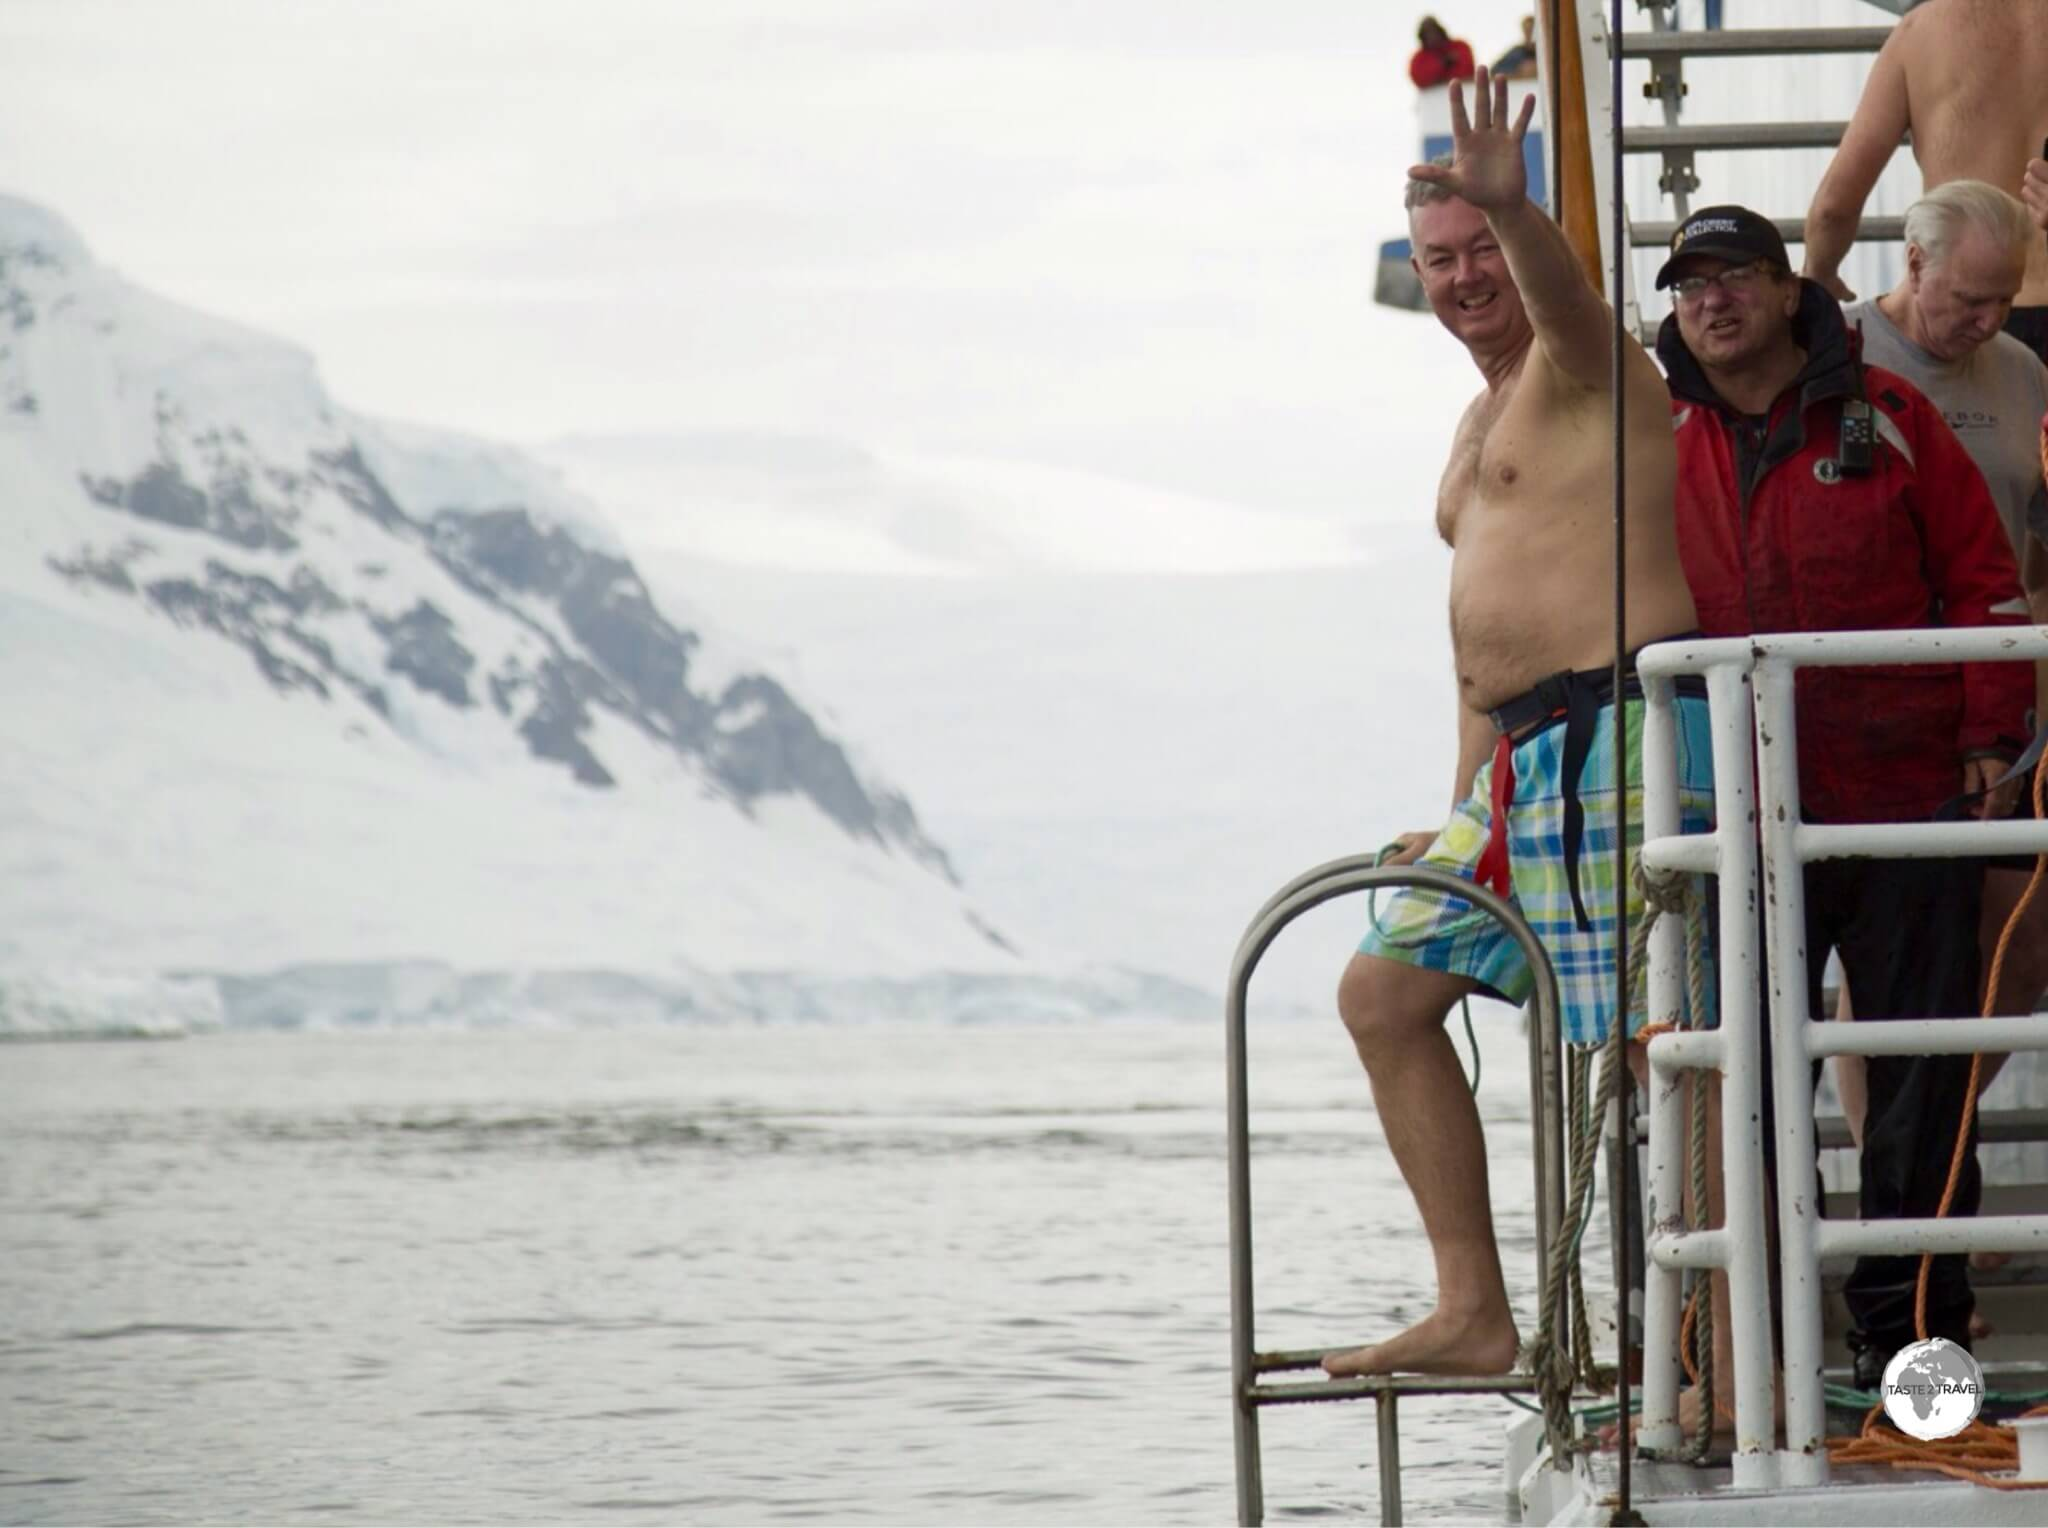 With a safety harness fitted, I'm ready to make my Polar Plunge into the icy waters of Wilhelmina Bay.